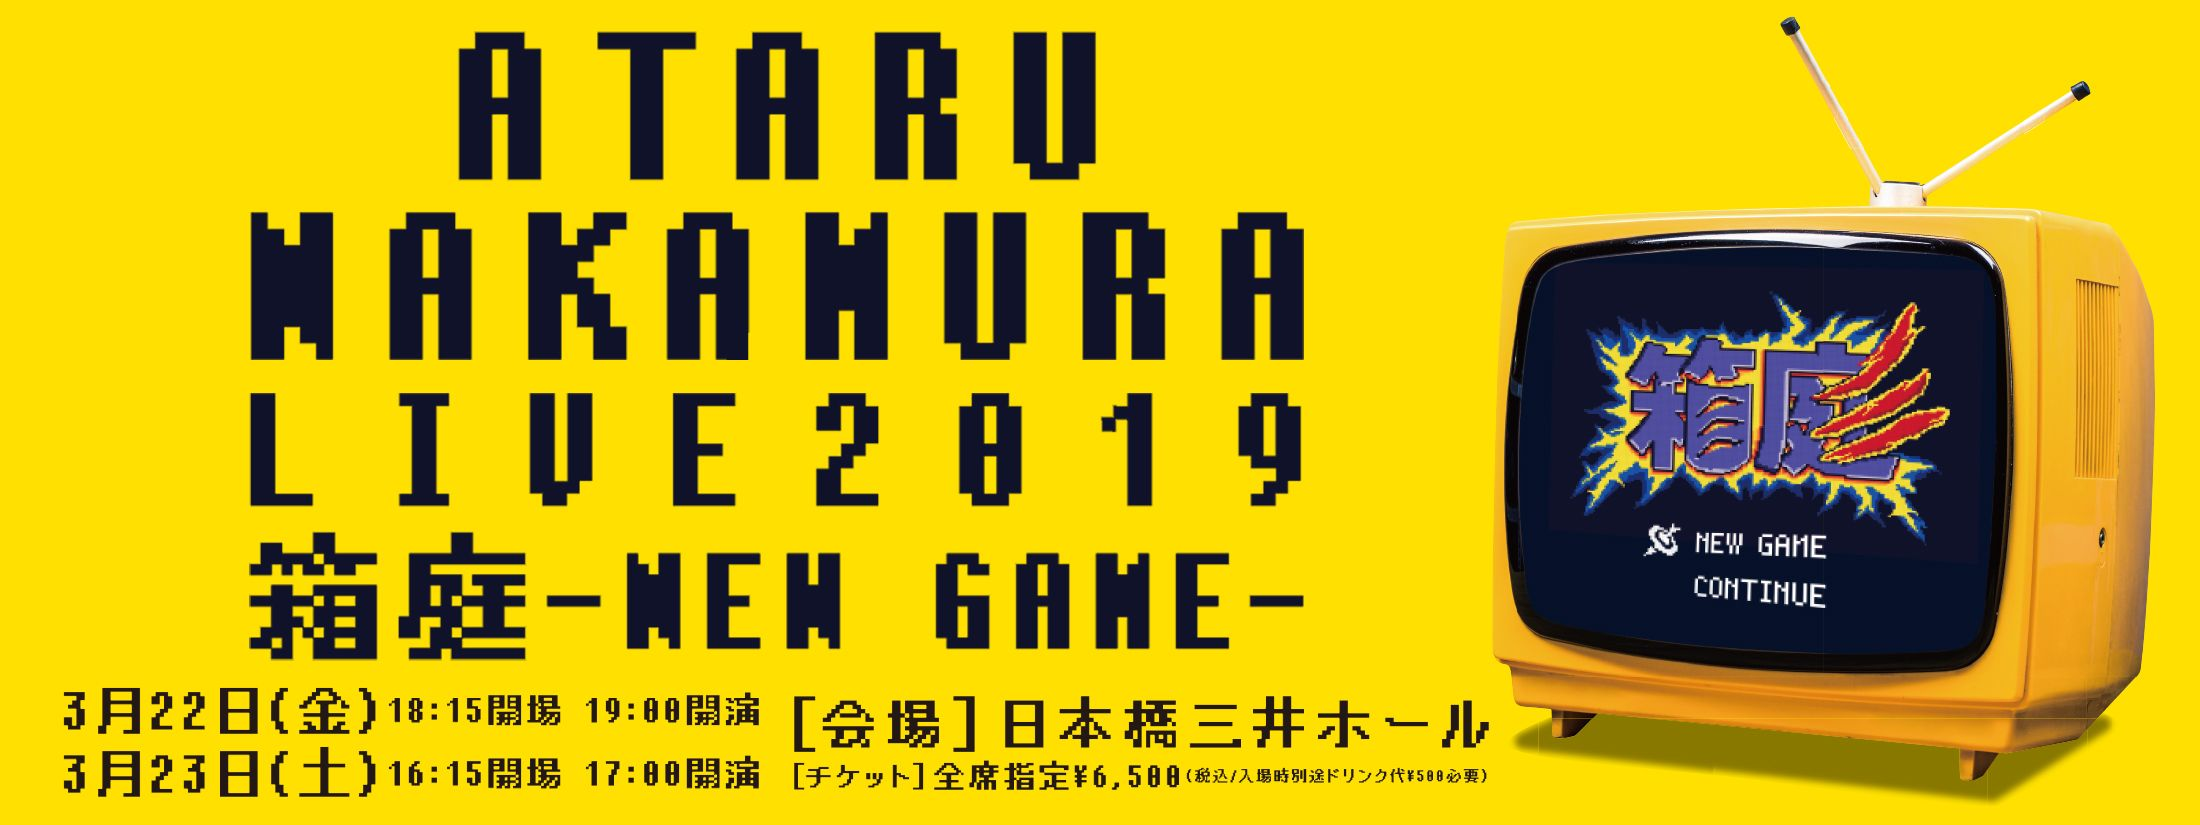 LIVE2019 箱庭-NEW GAME- @日本橋三井ホール